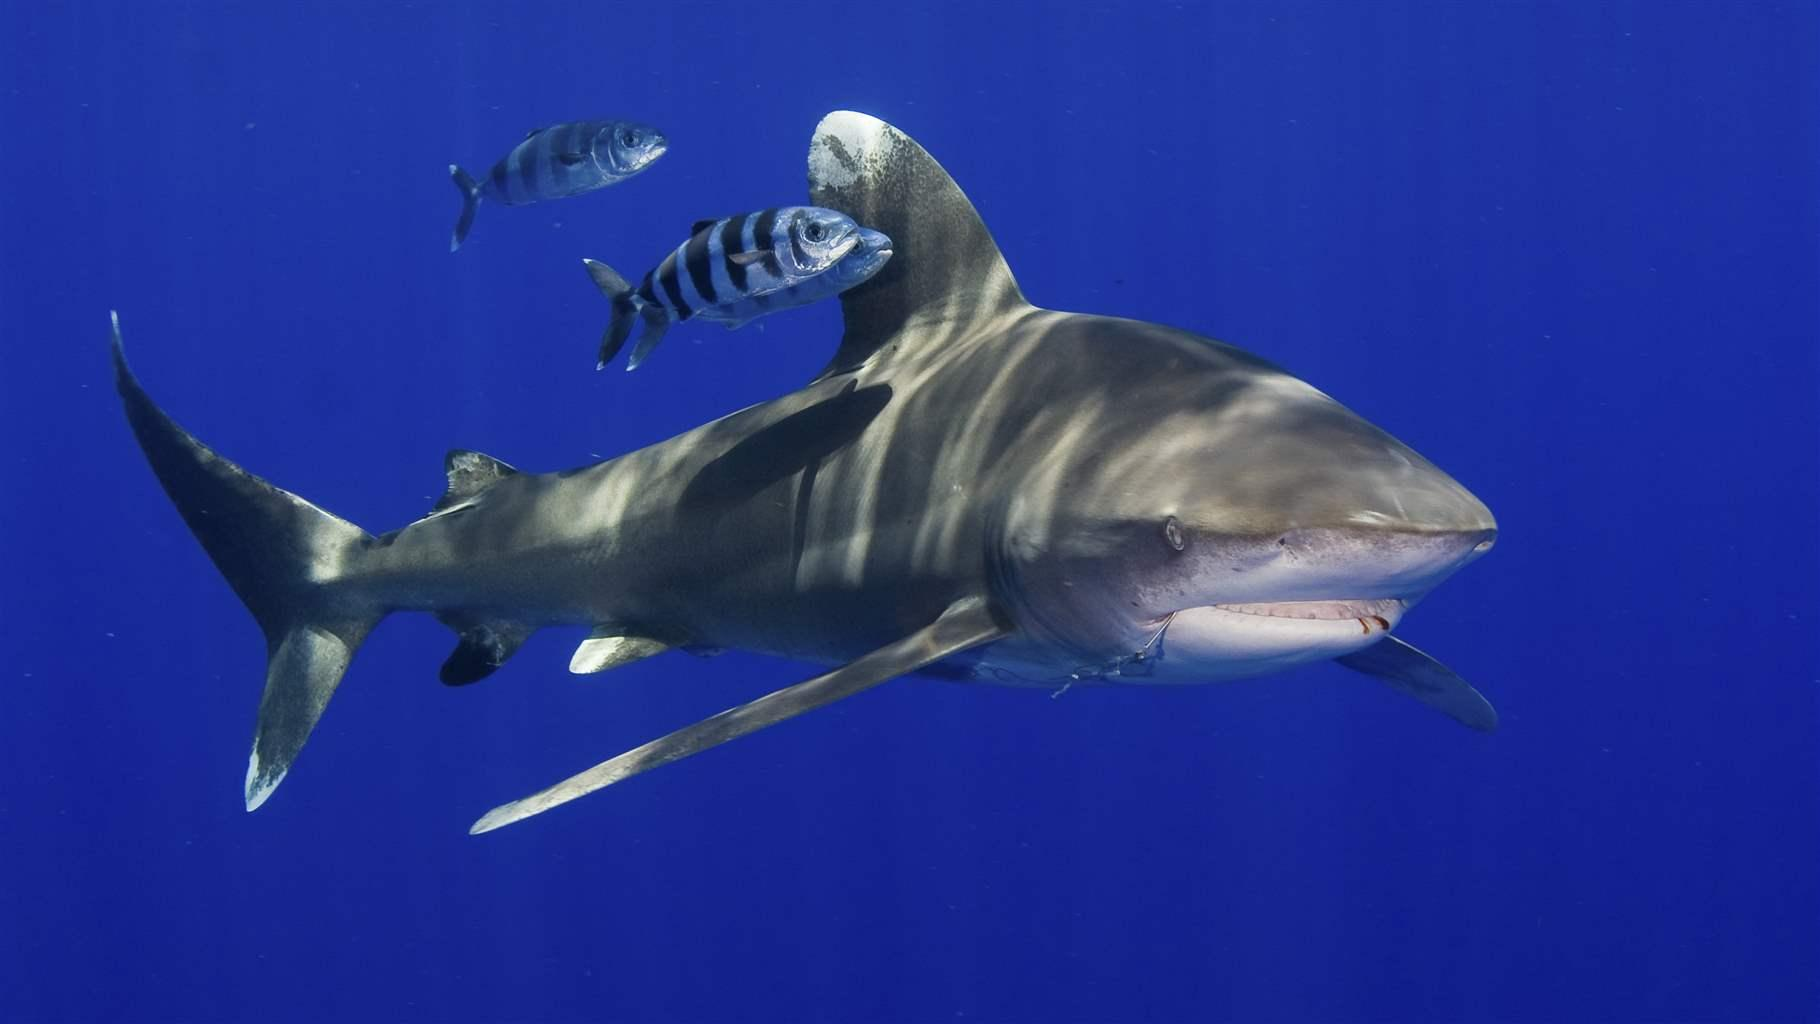 The top 10 coolest sharks in Australia, according to our